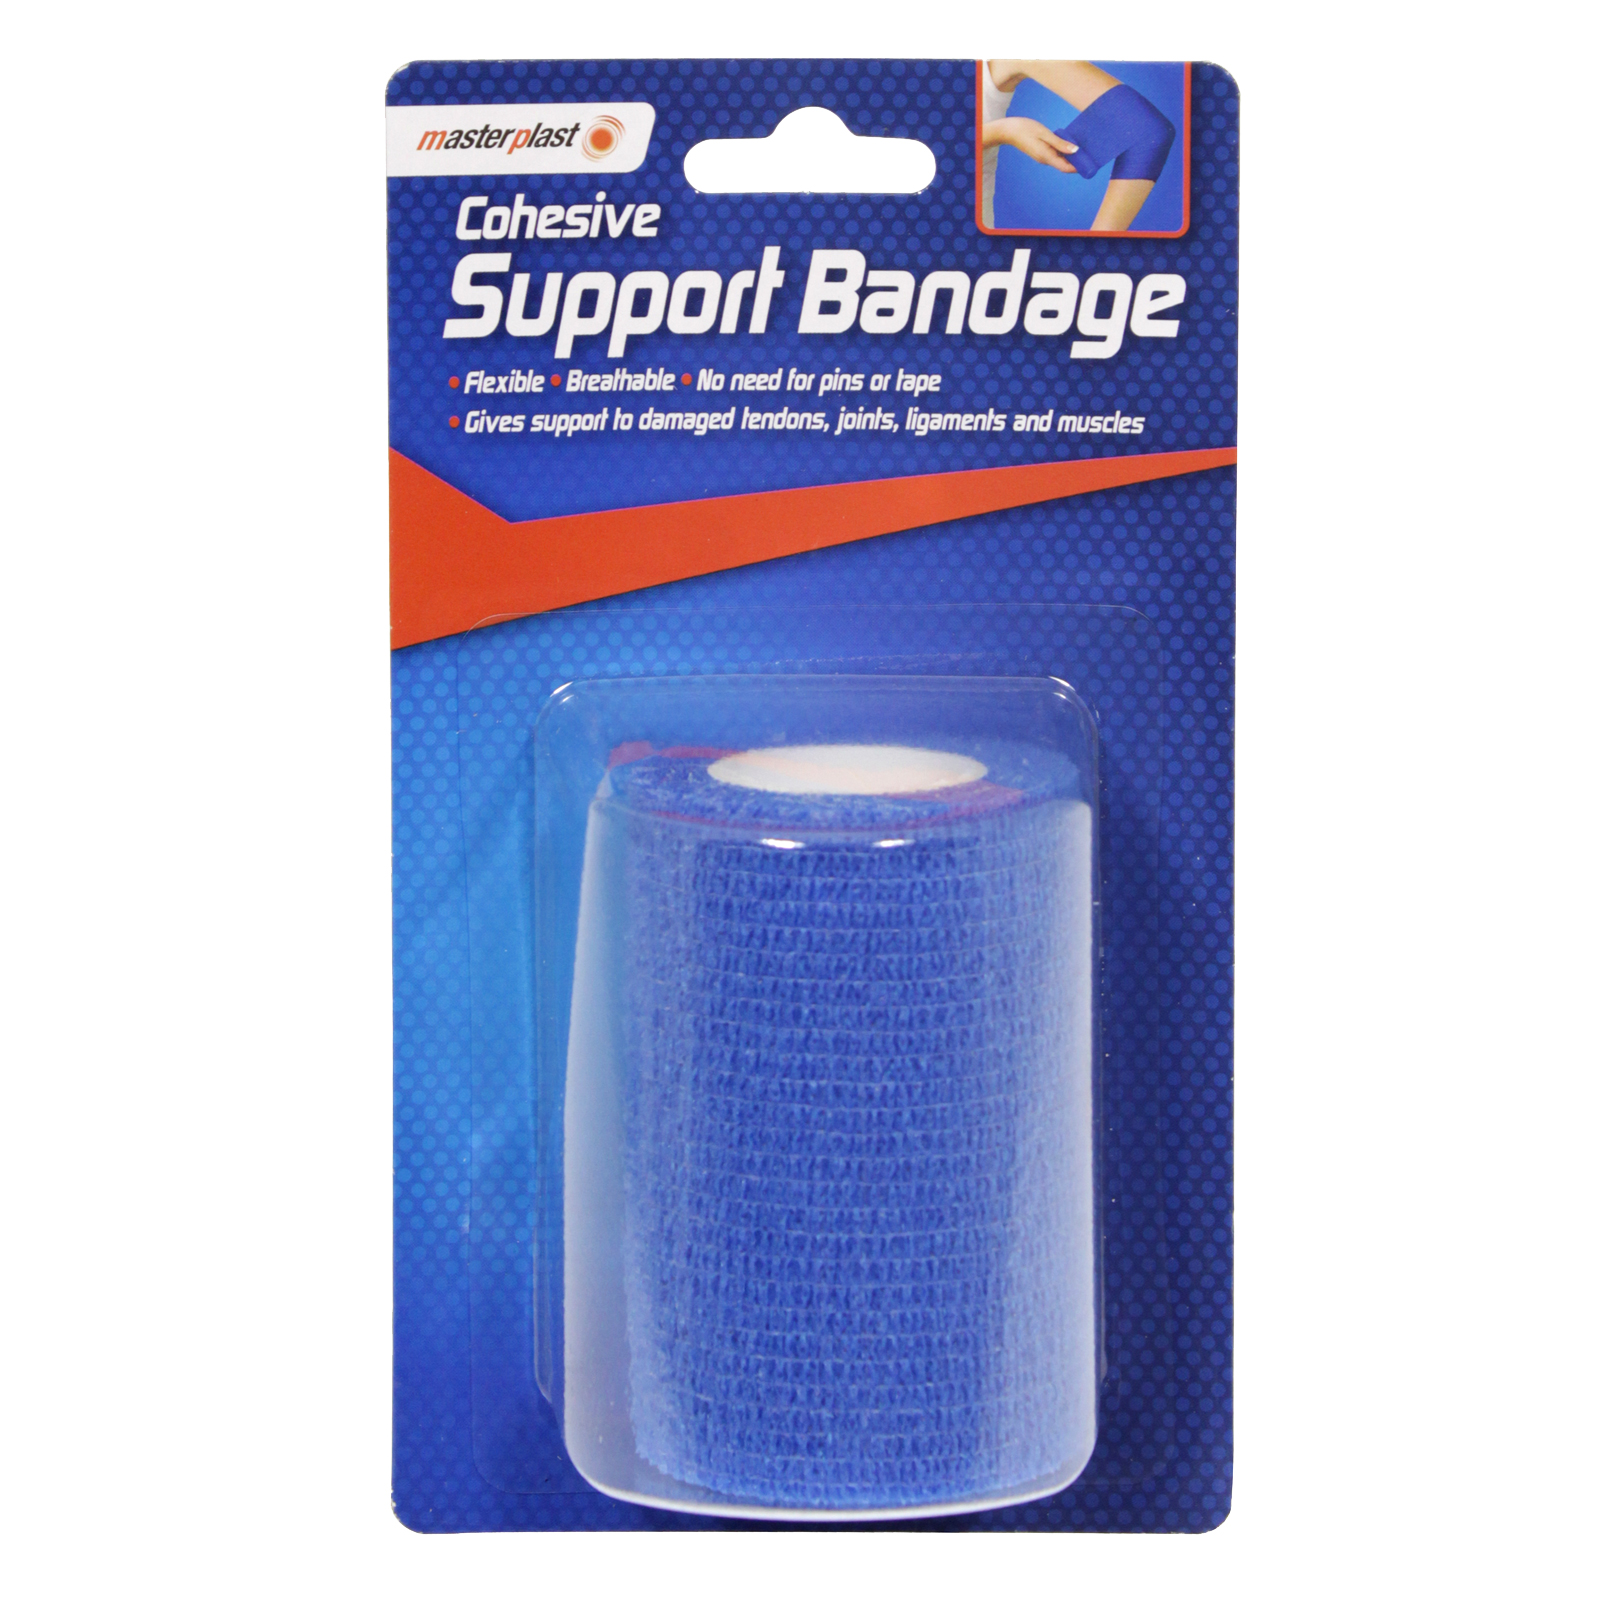 MASTERPLAST COHESIVE SUPPORT BANDAGE 7CM X 4M